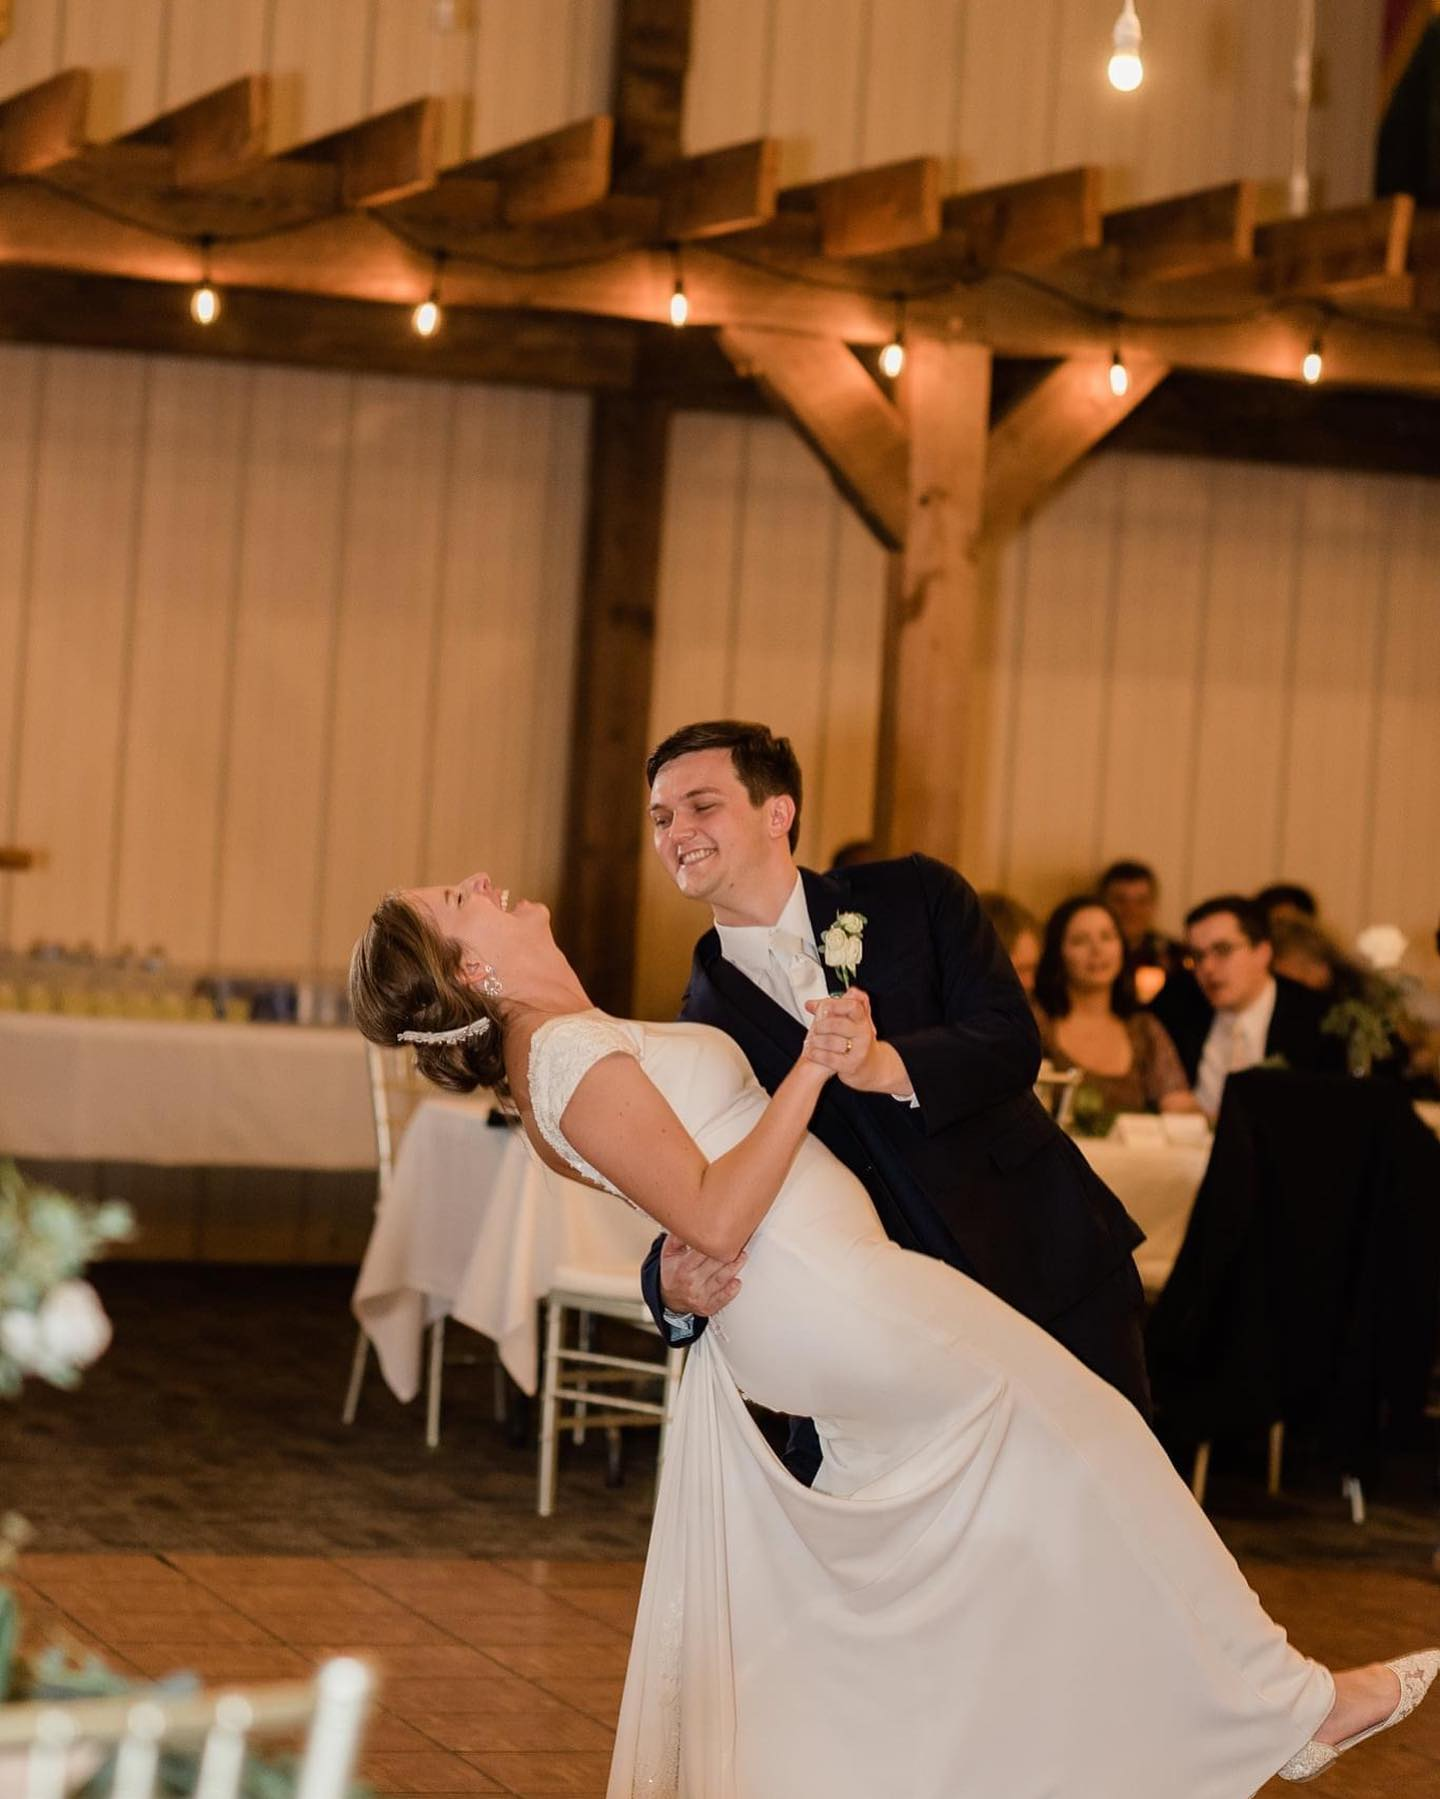 We're here to help you pick the perfect song for your first dance